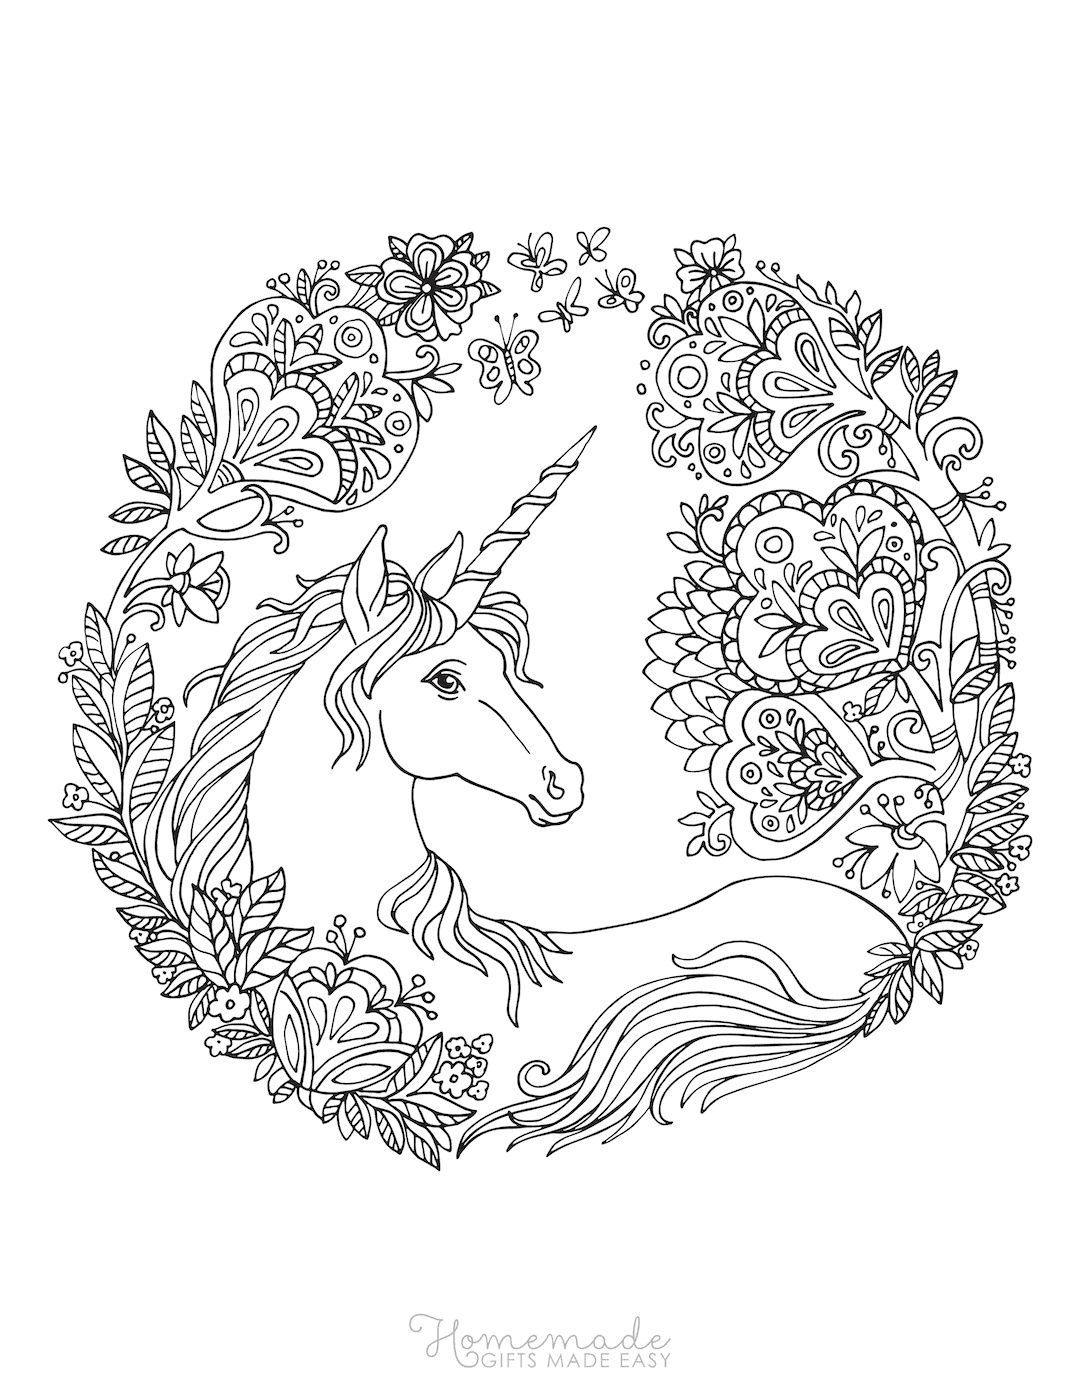 75 Magical Unicorn Coloring Pages For Kids Adults Free Printables In 2021 Unicorn Coloring Pages Love Coloring Pages Coloring Books